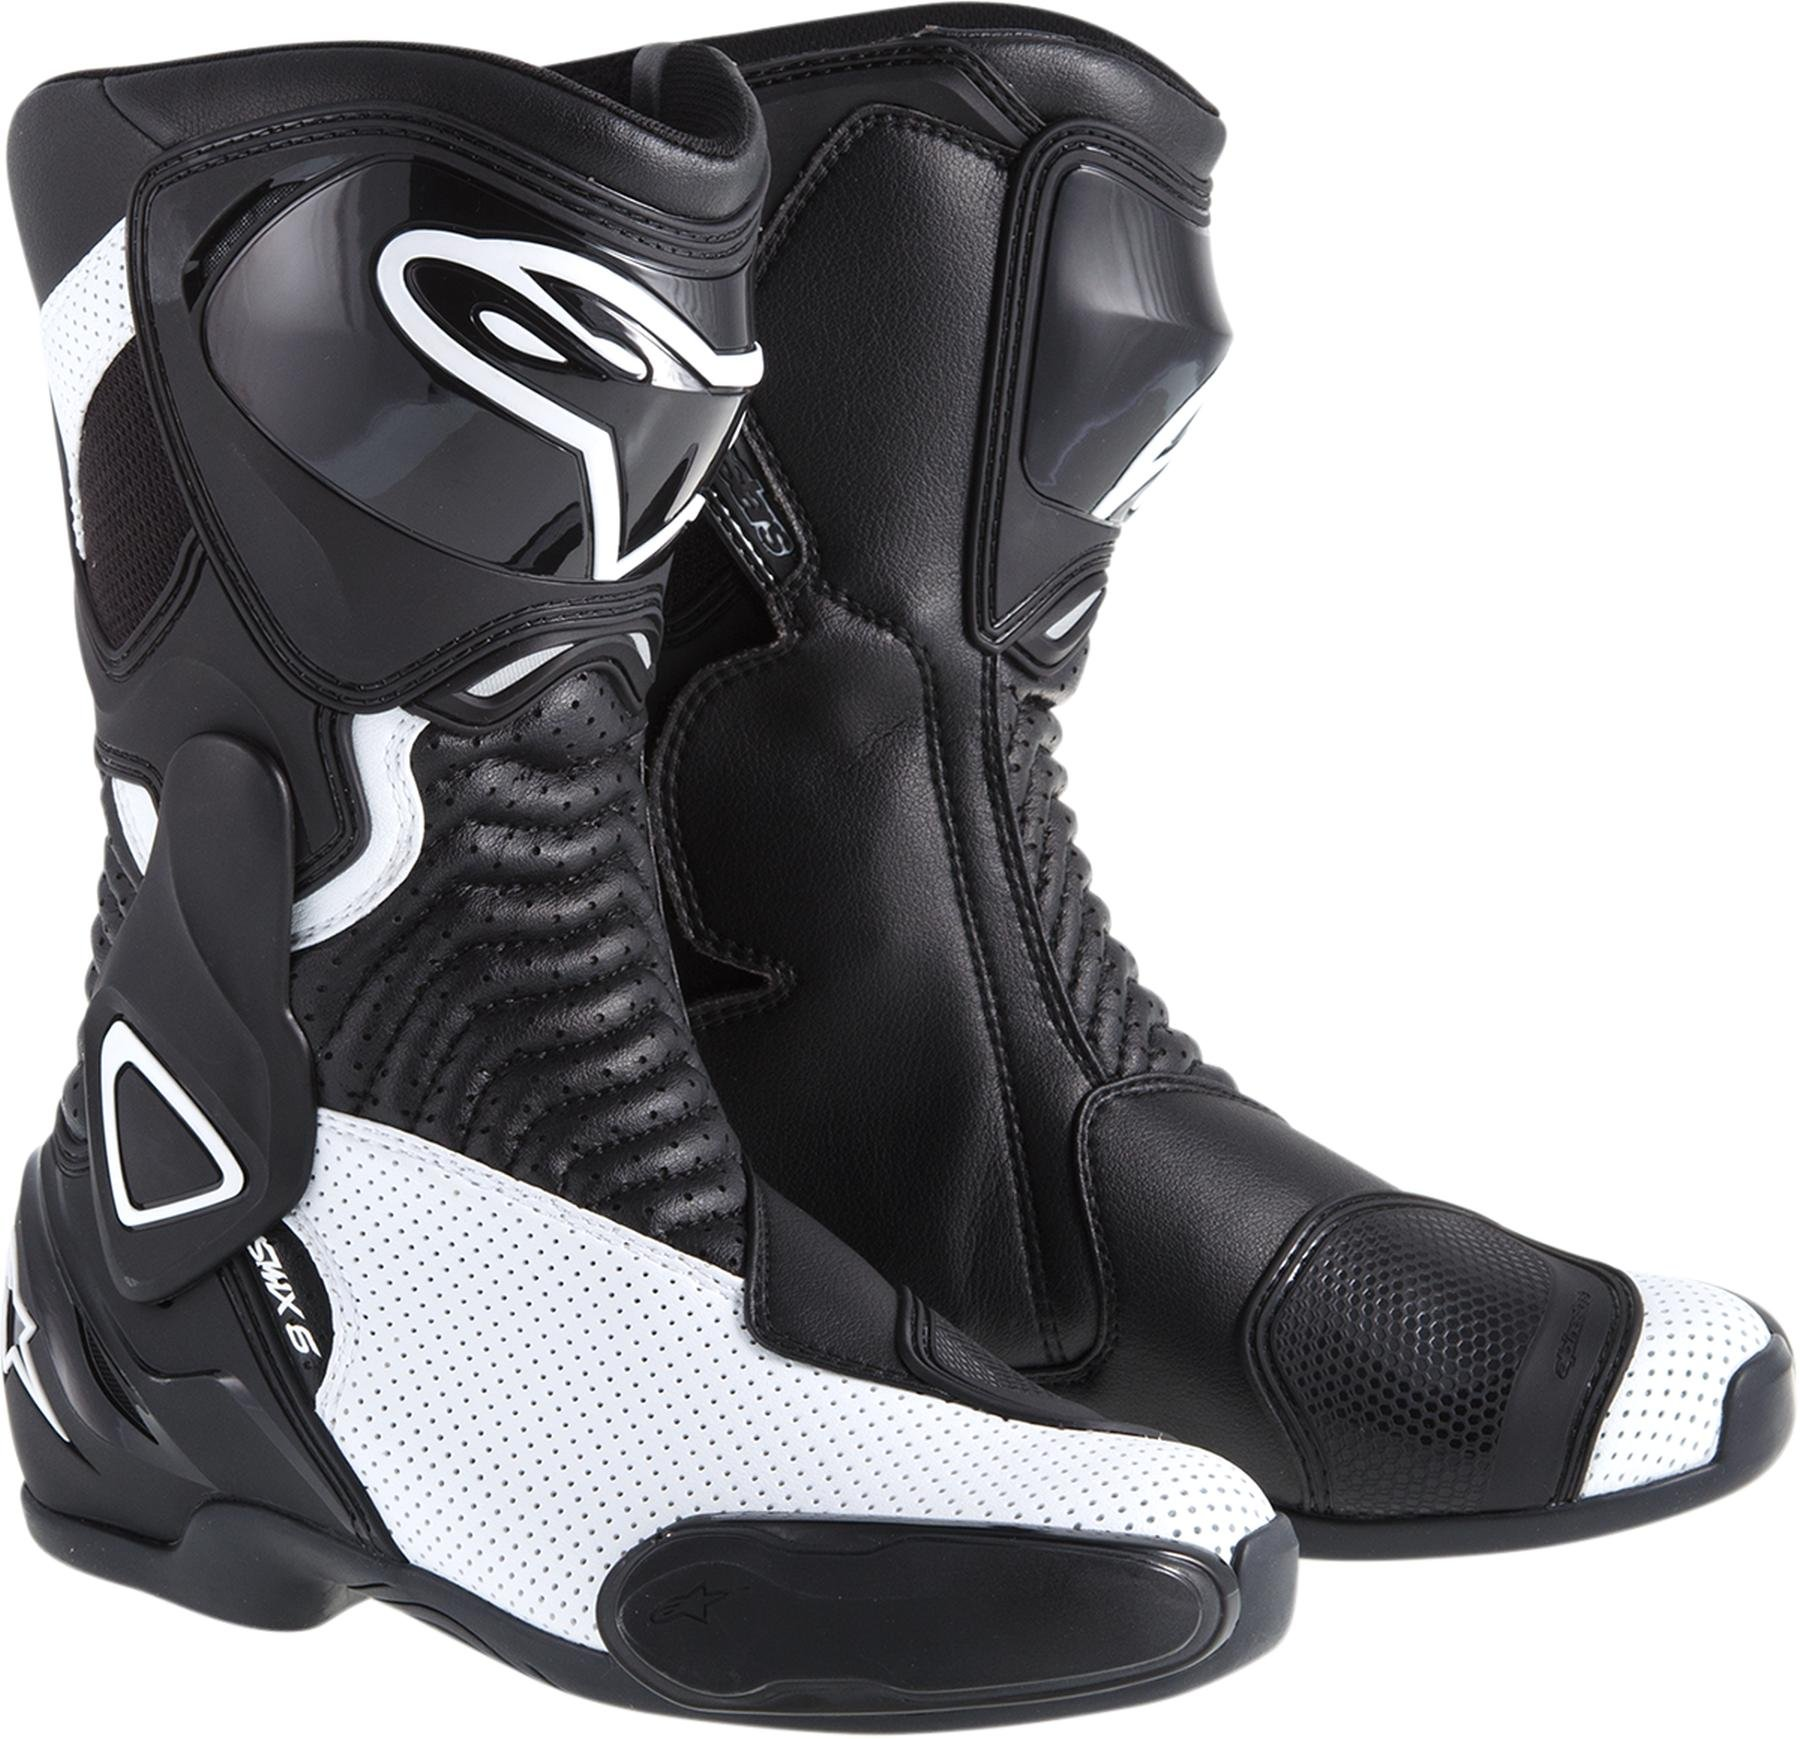 ALPINESTARS STELLA SMX-6 PERFORMANCE RIDING VENTED WOMENS SPORT-FIT BOOTS,BLACK/WHITE,EUR-40/US-8.5